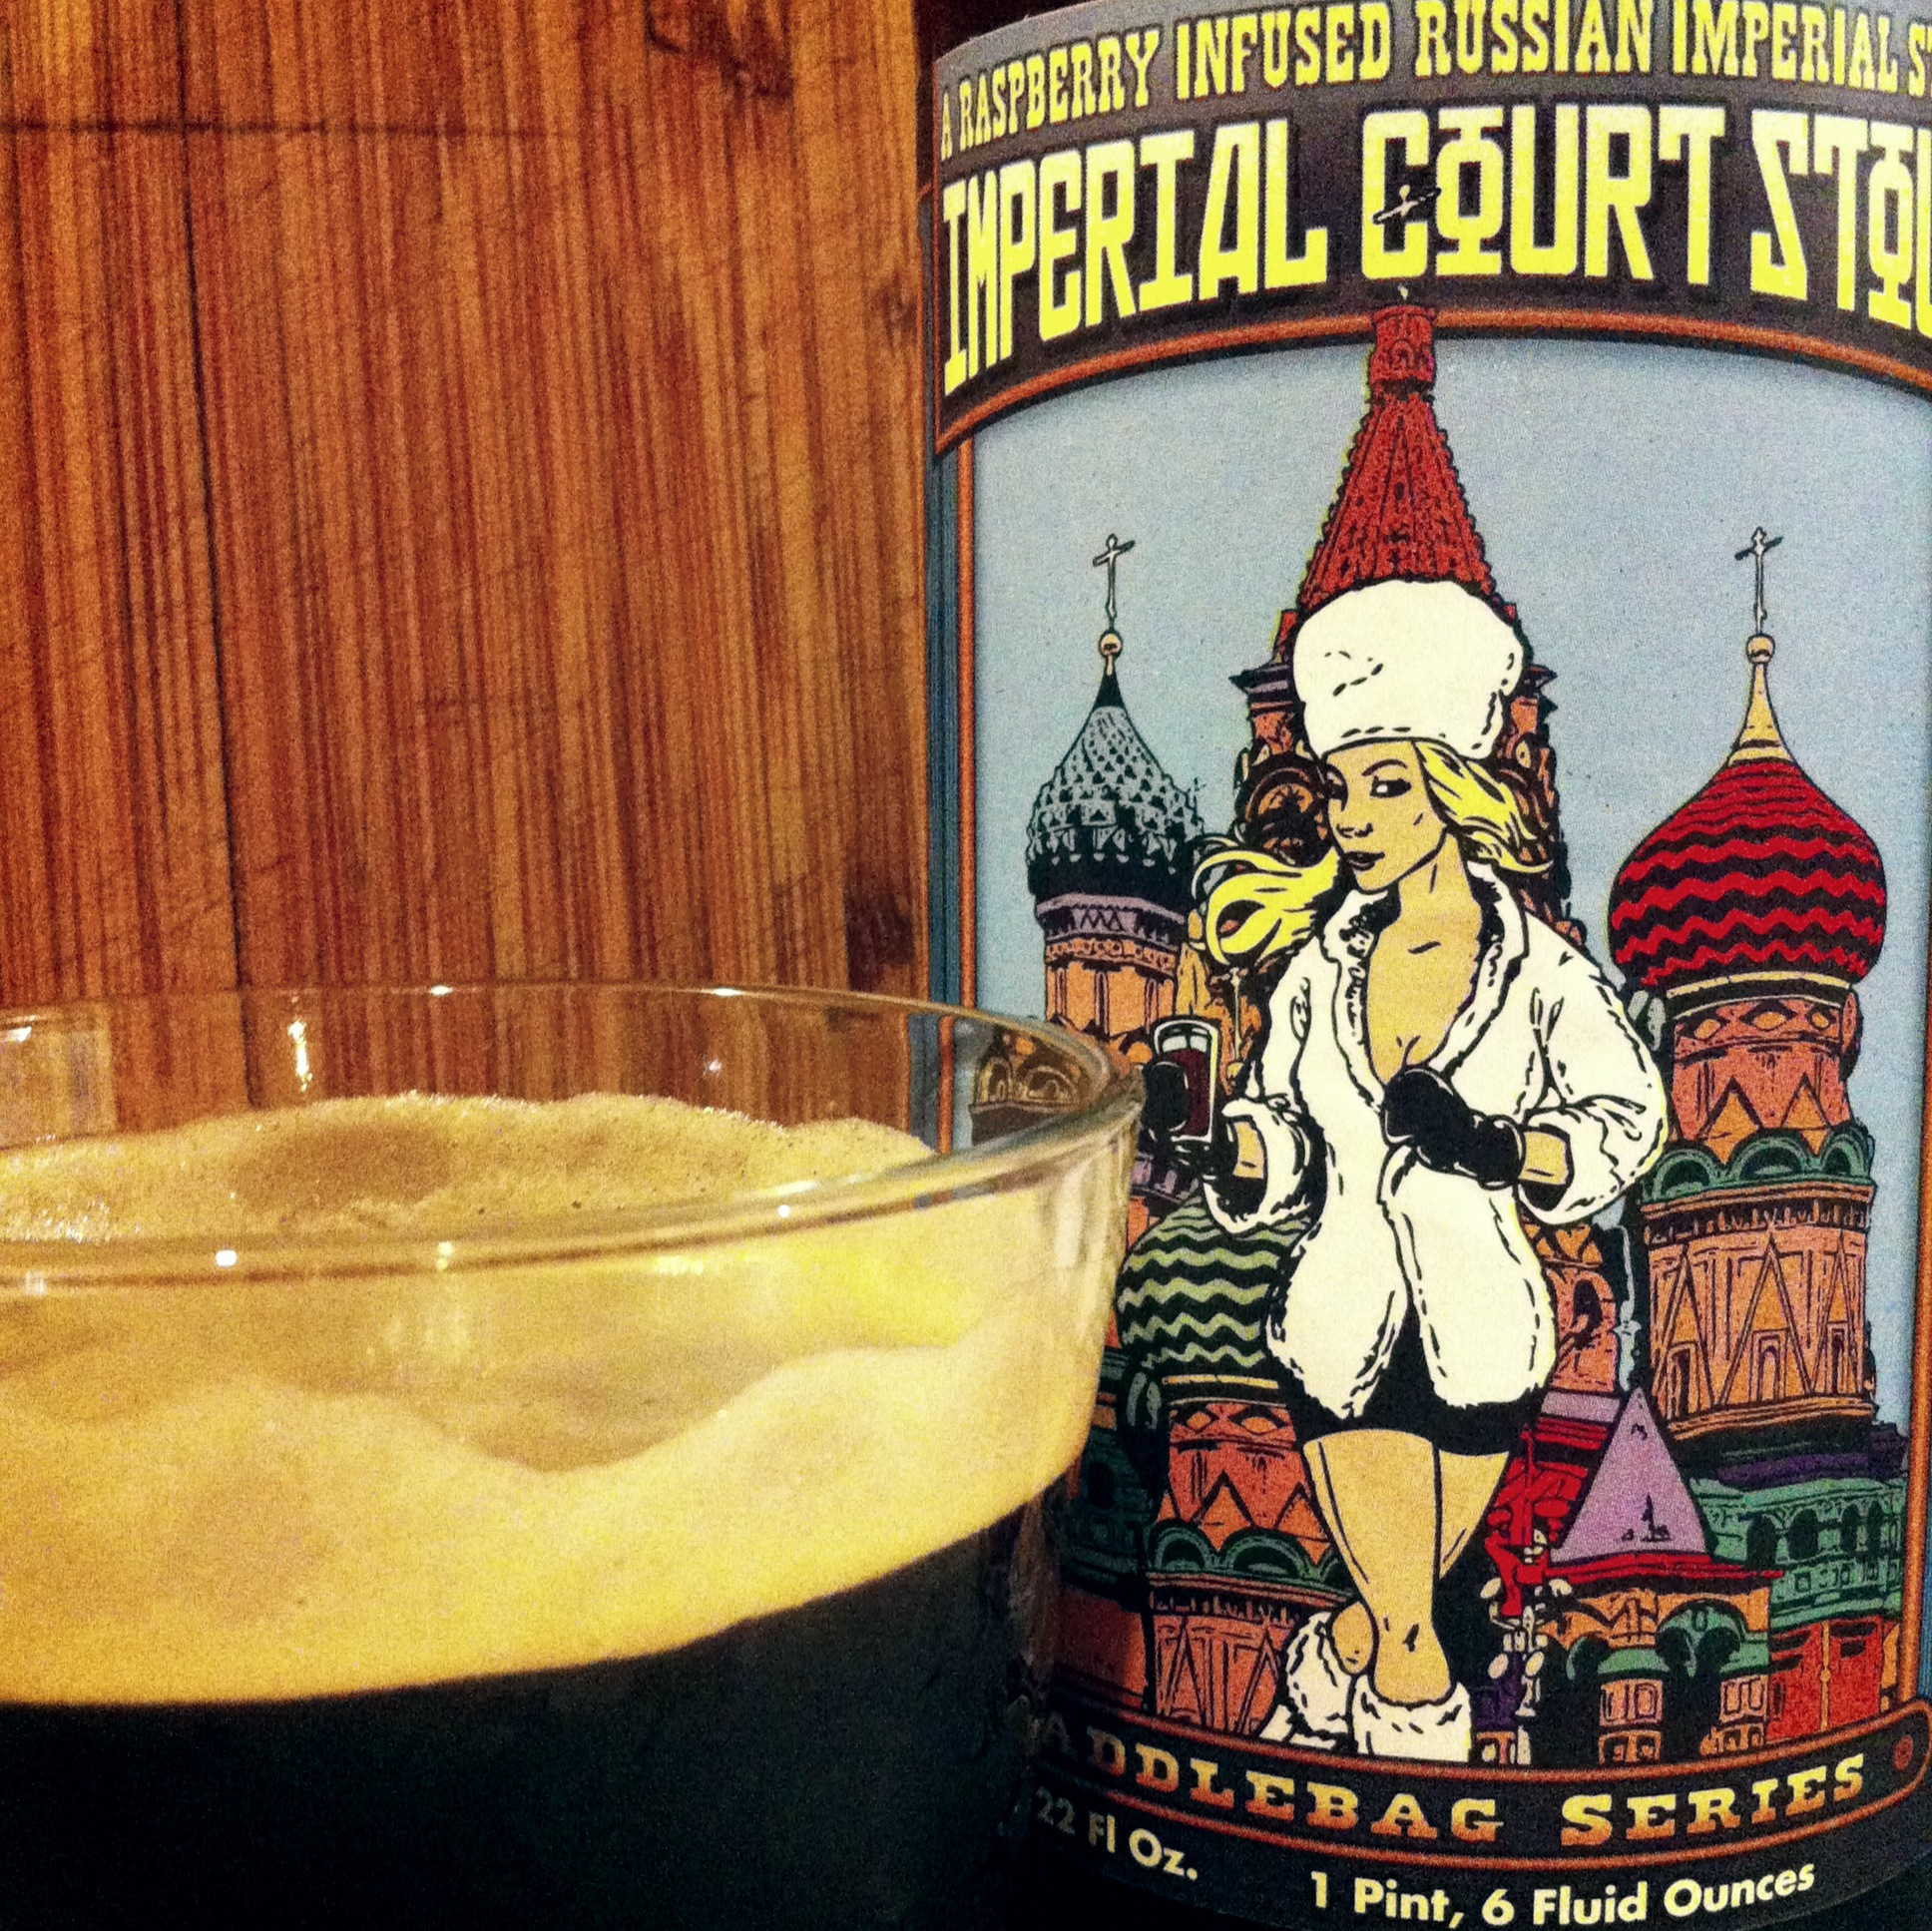 At 9.6% ABV Svetlana will warm you up with her tarty charms.